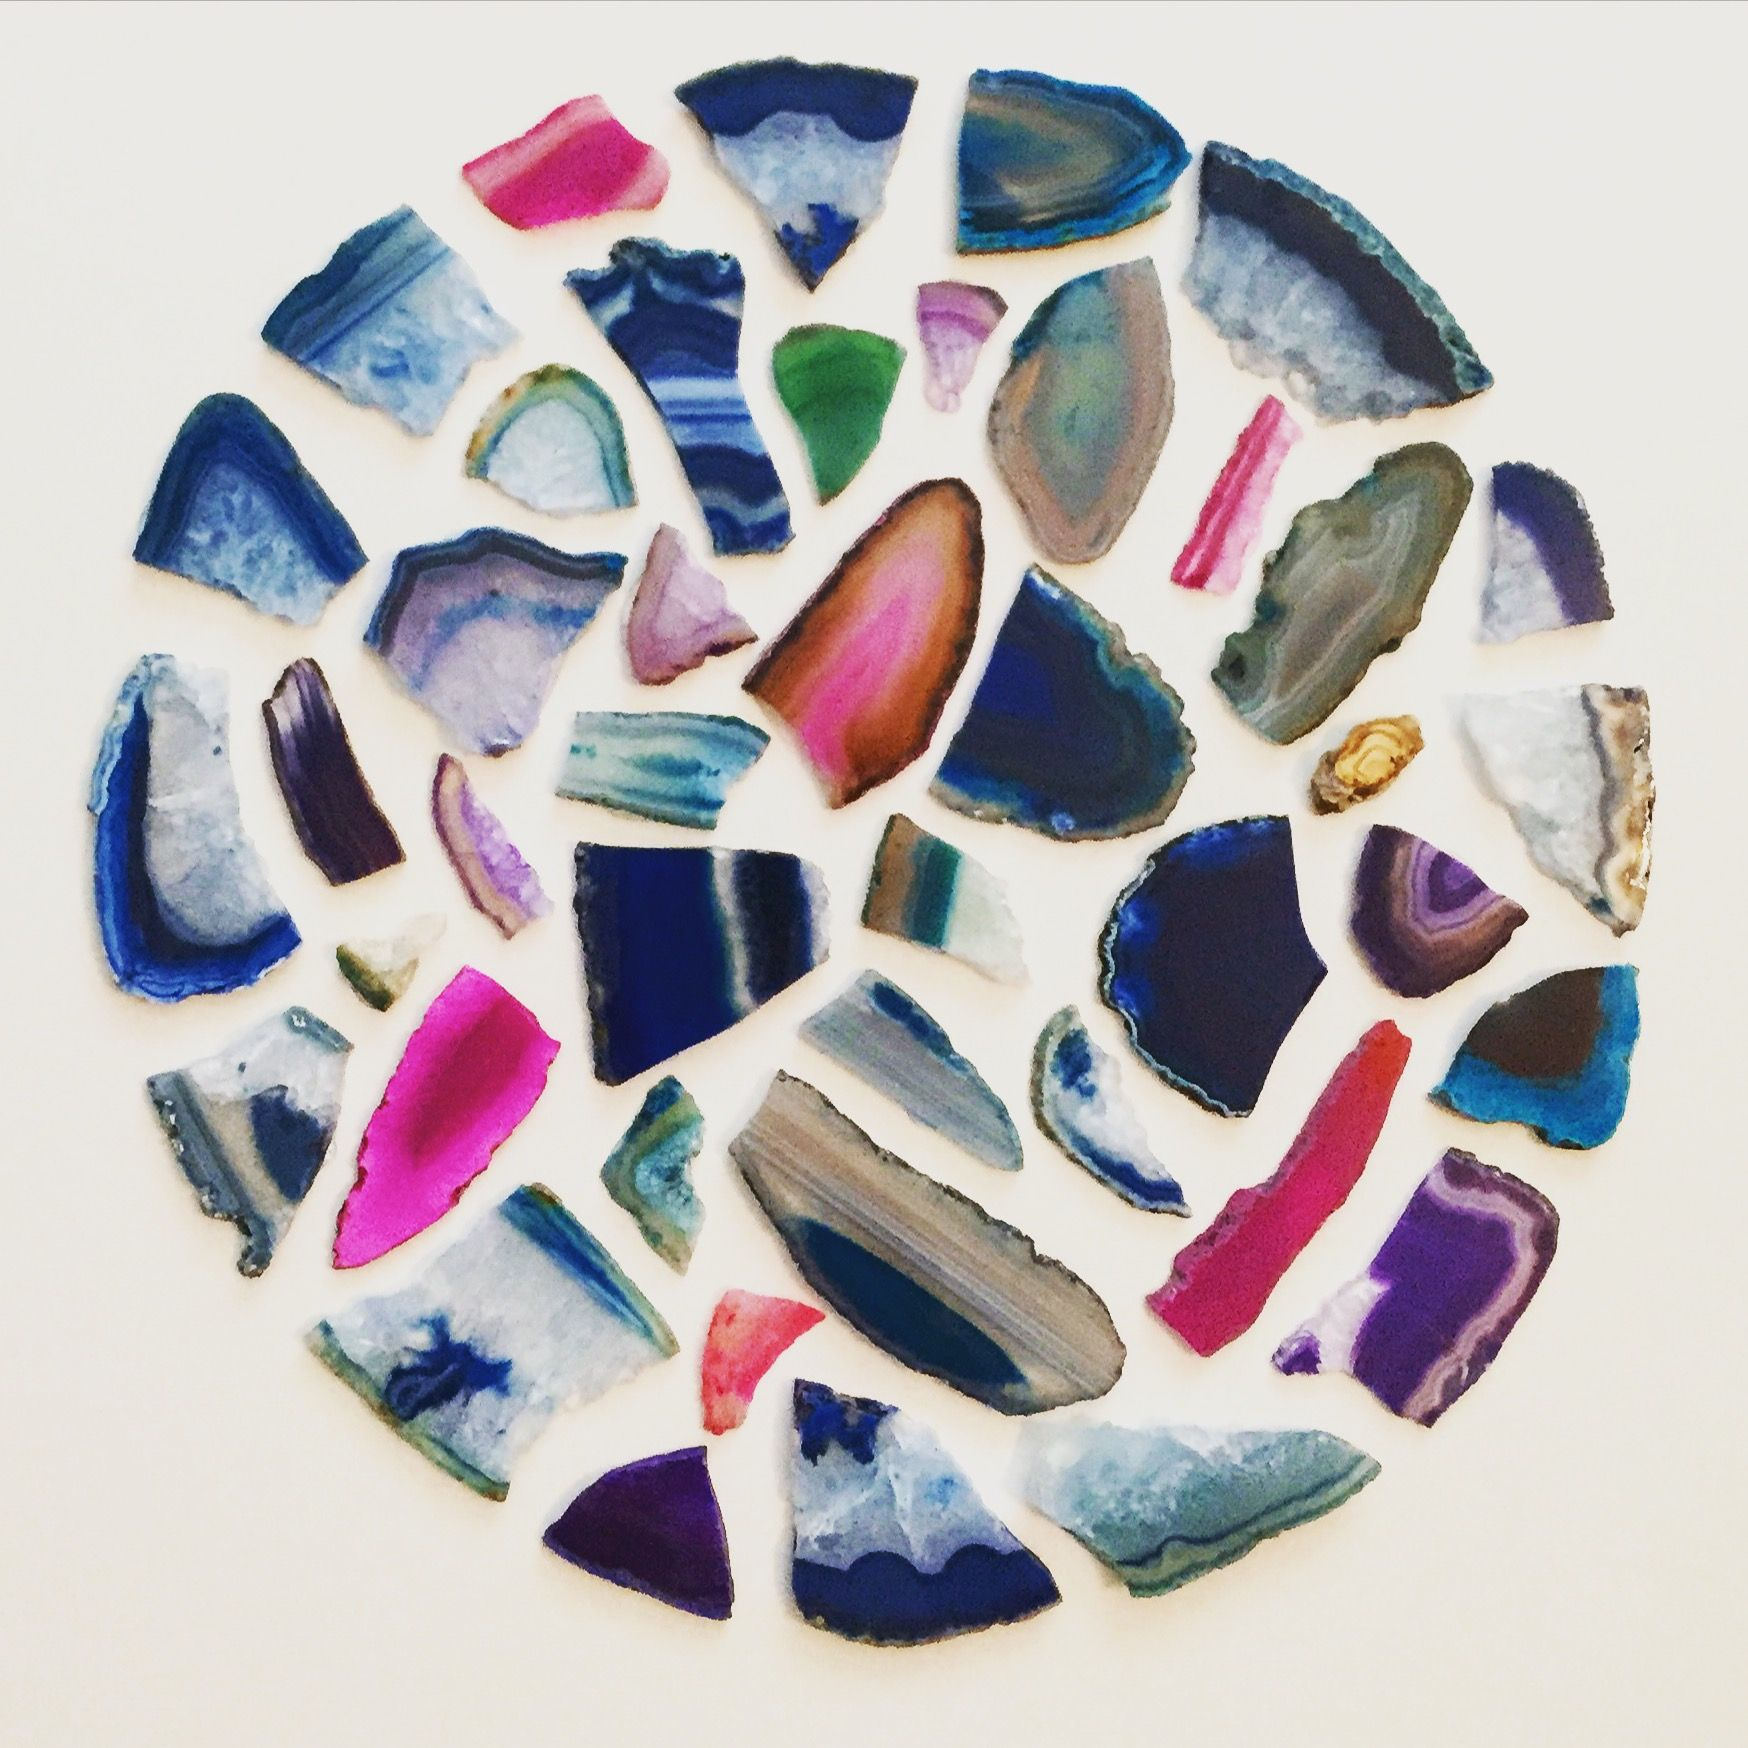 Wall art made from agate slices